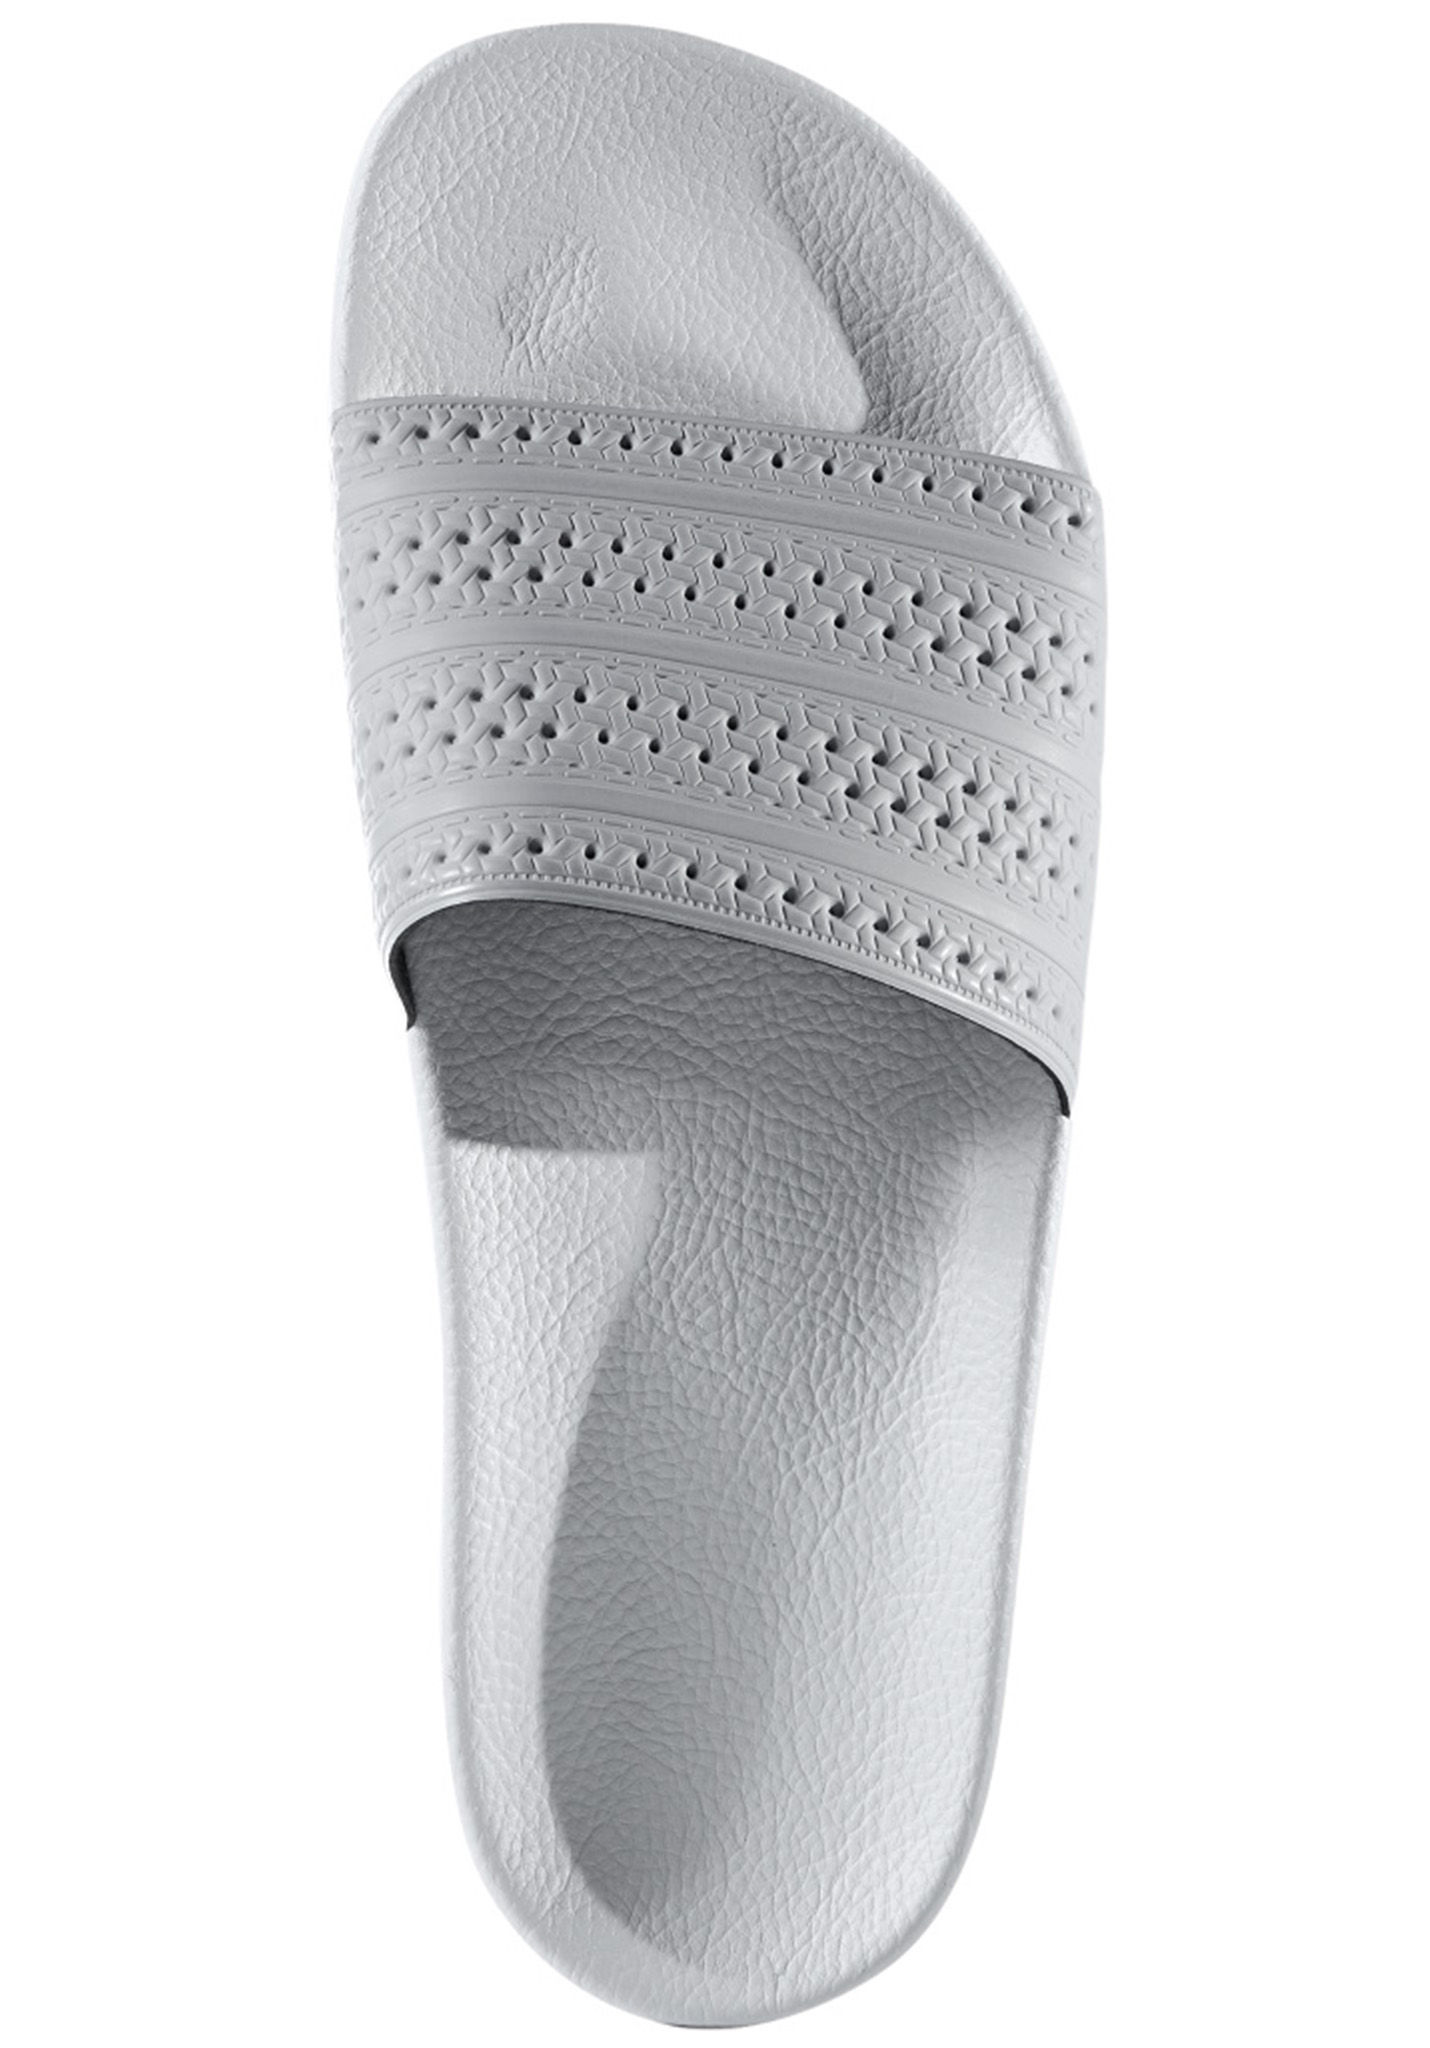 competitive price c91b1 a556b ADIDAS ORIGINALS Adilette - Sandali - Grigio - Planet Sports